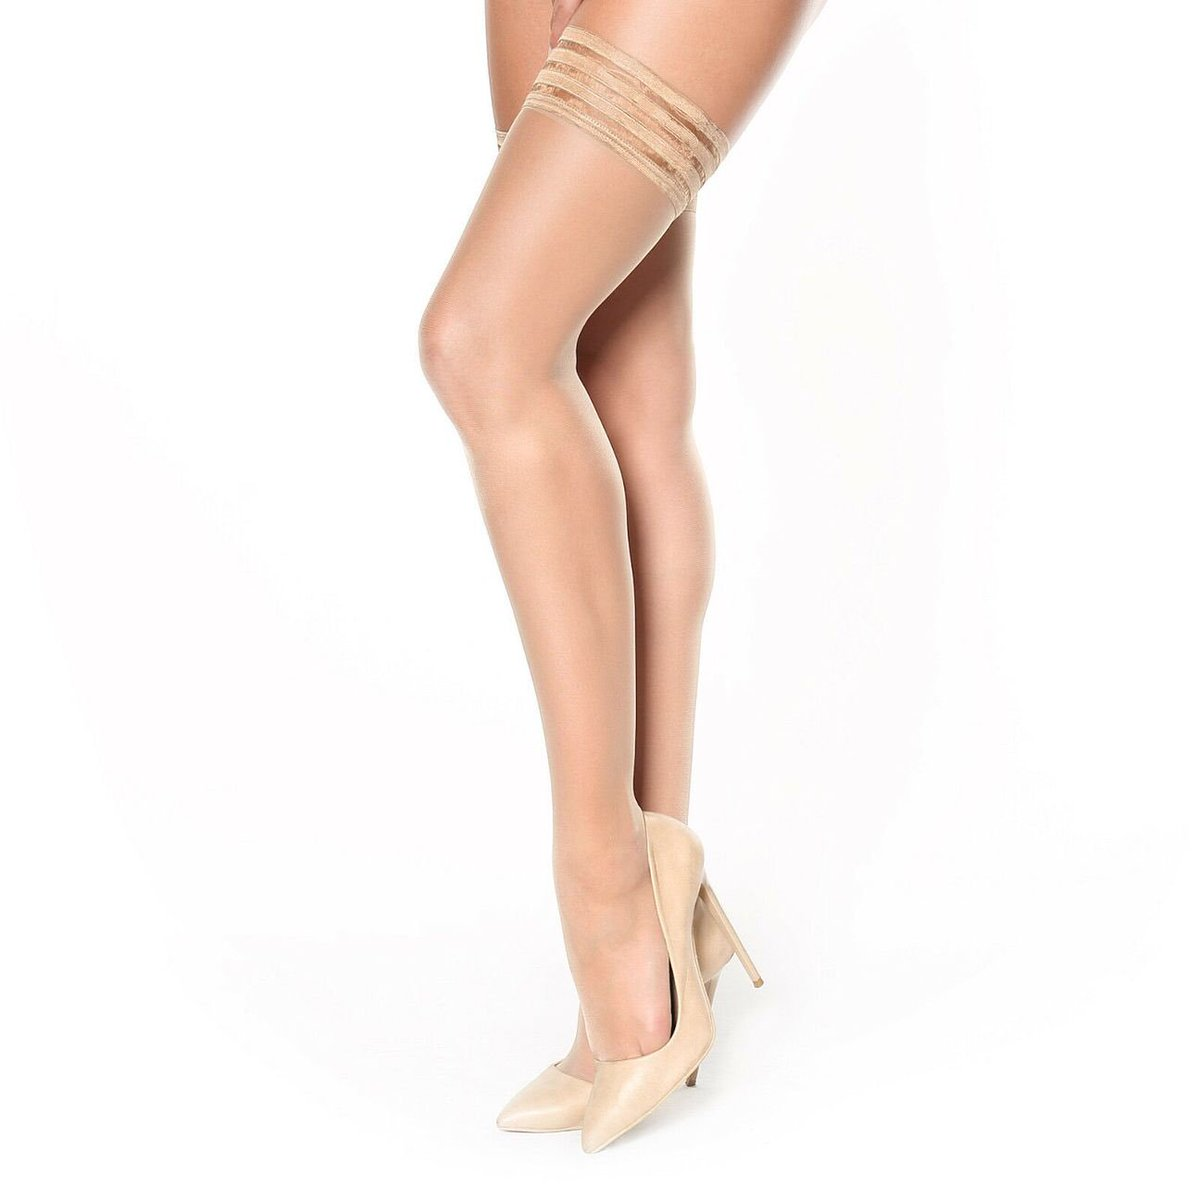 182c7a251864b Miss O Silky Hold Up Stockings in Visone. Attractive decorative tops, and  the usual